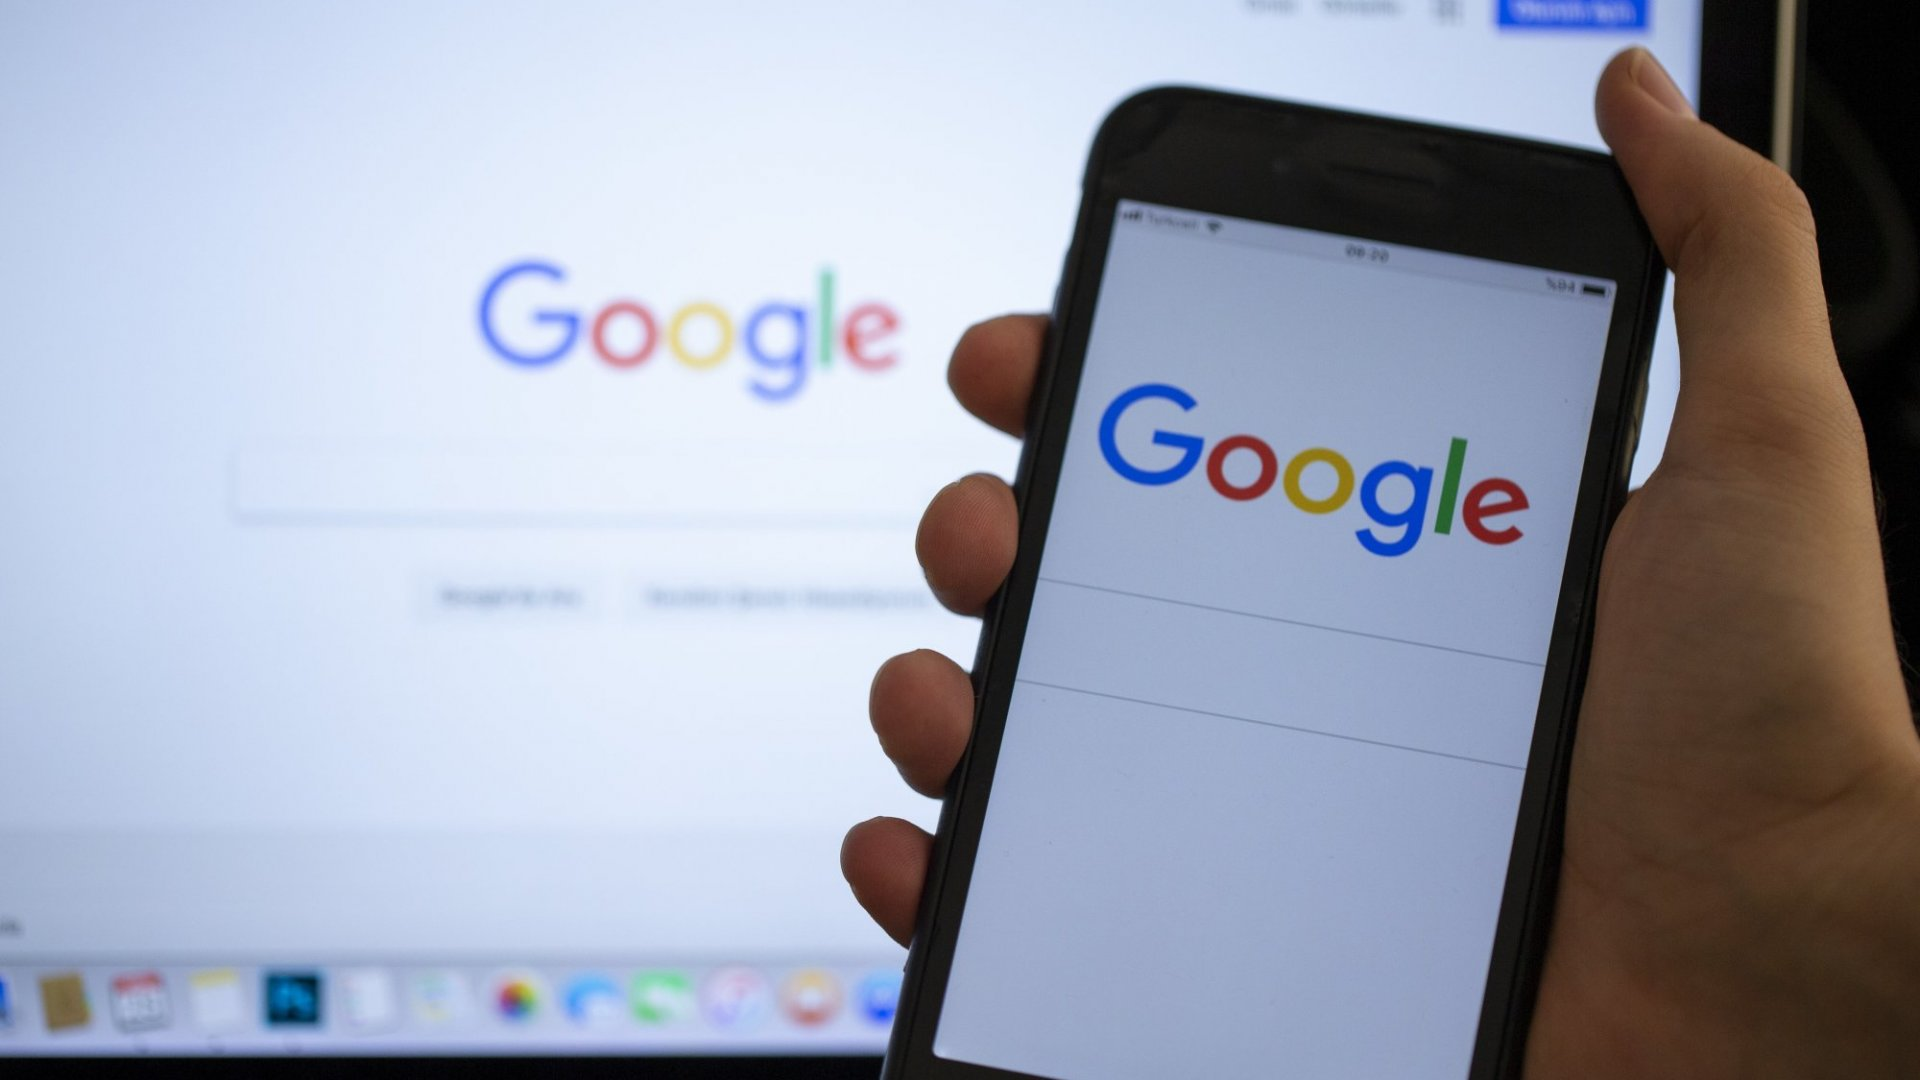 Google Announces Security Flaw That Could Let an Attacker Access Your Device